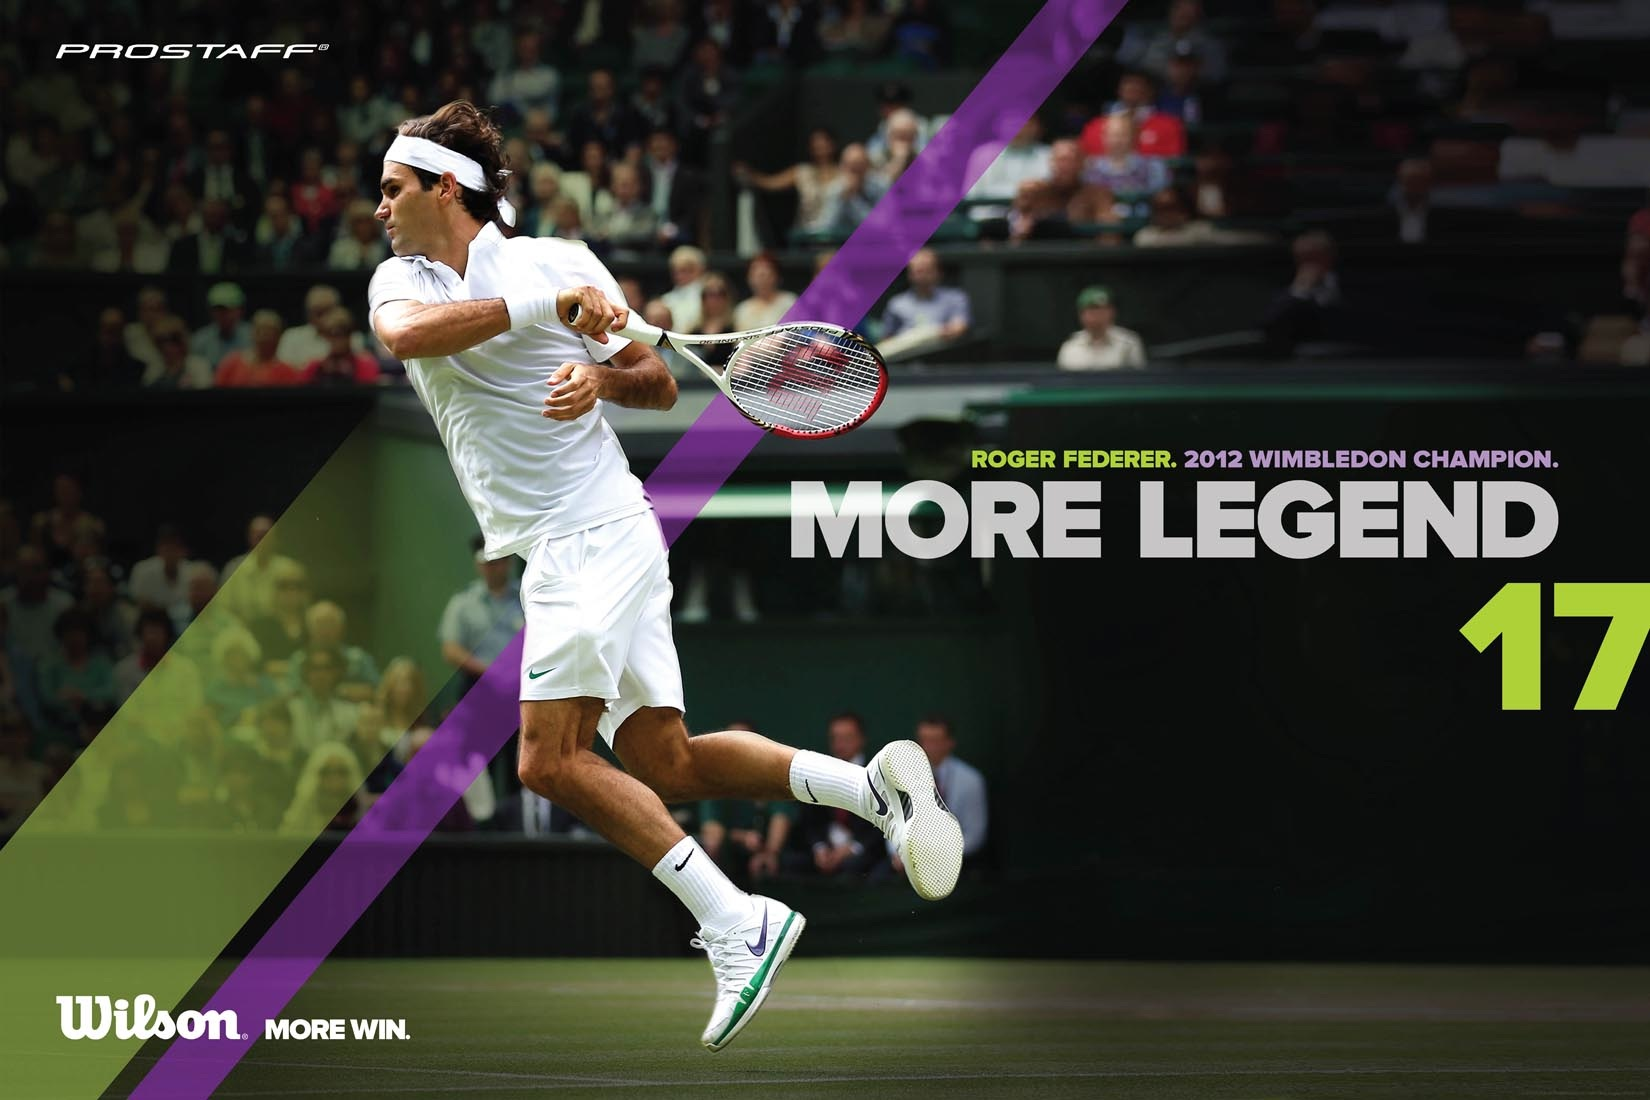 2012 Wimbledon Champion ATP Tour World 1 Roger Federer plays with 1650x1100